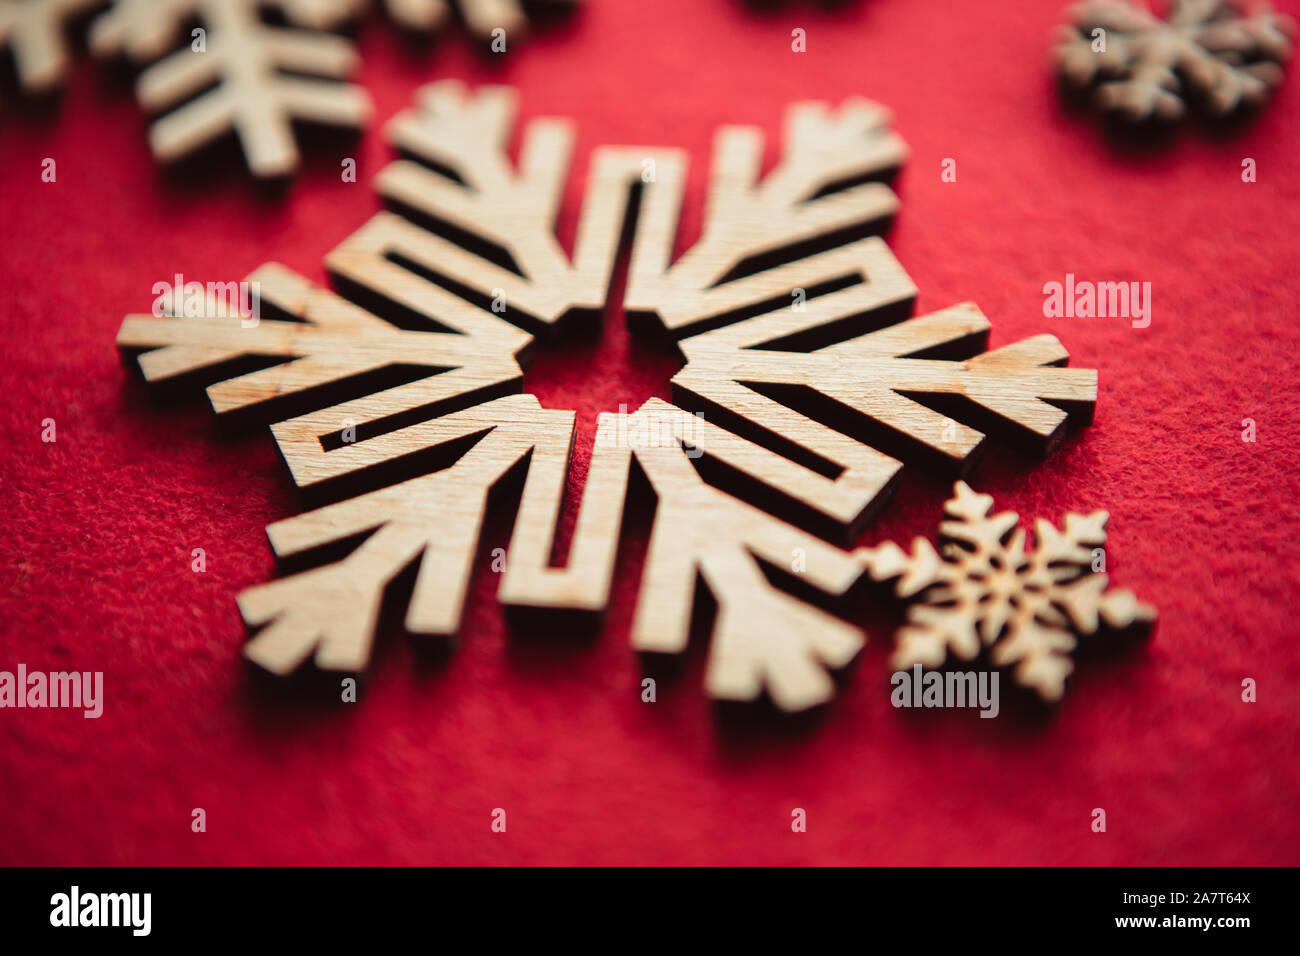 Handmade Wooden Snowflake For Winter Holiday Decoration